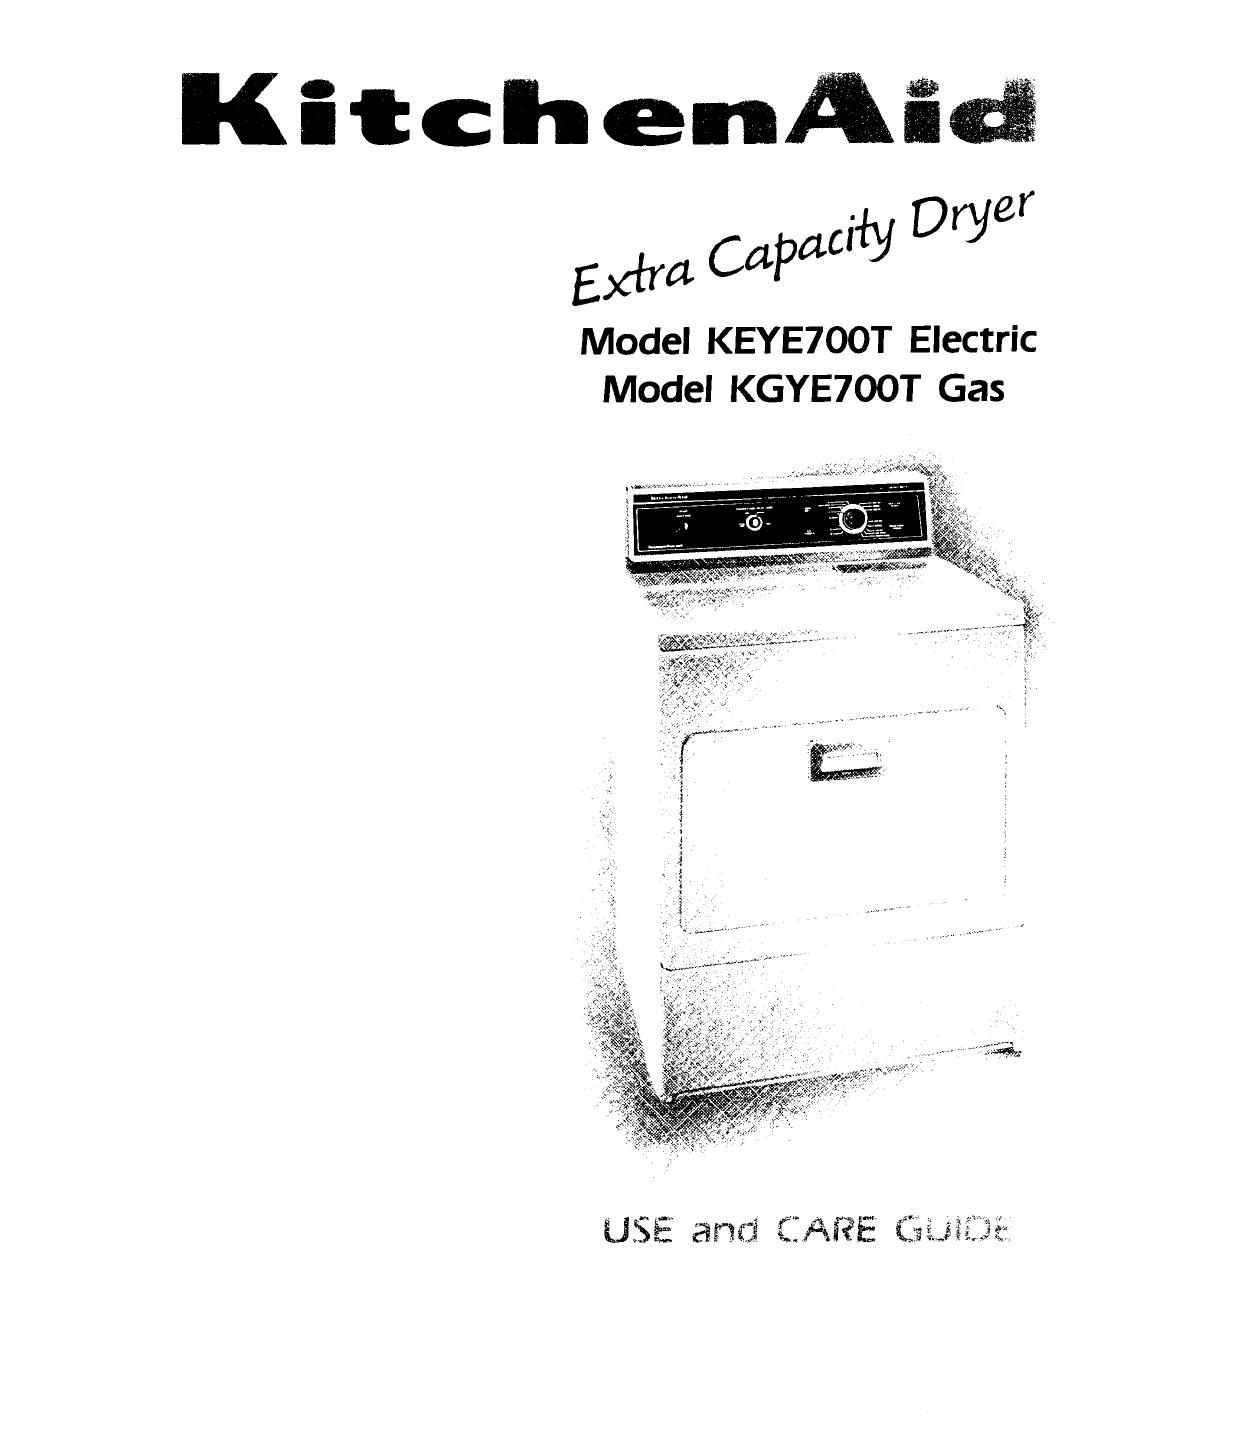 KitchenAid Washer/Dryer KEYE700T User Guide